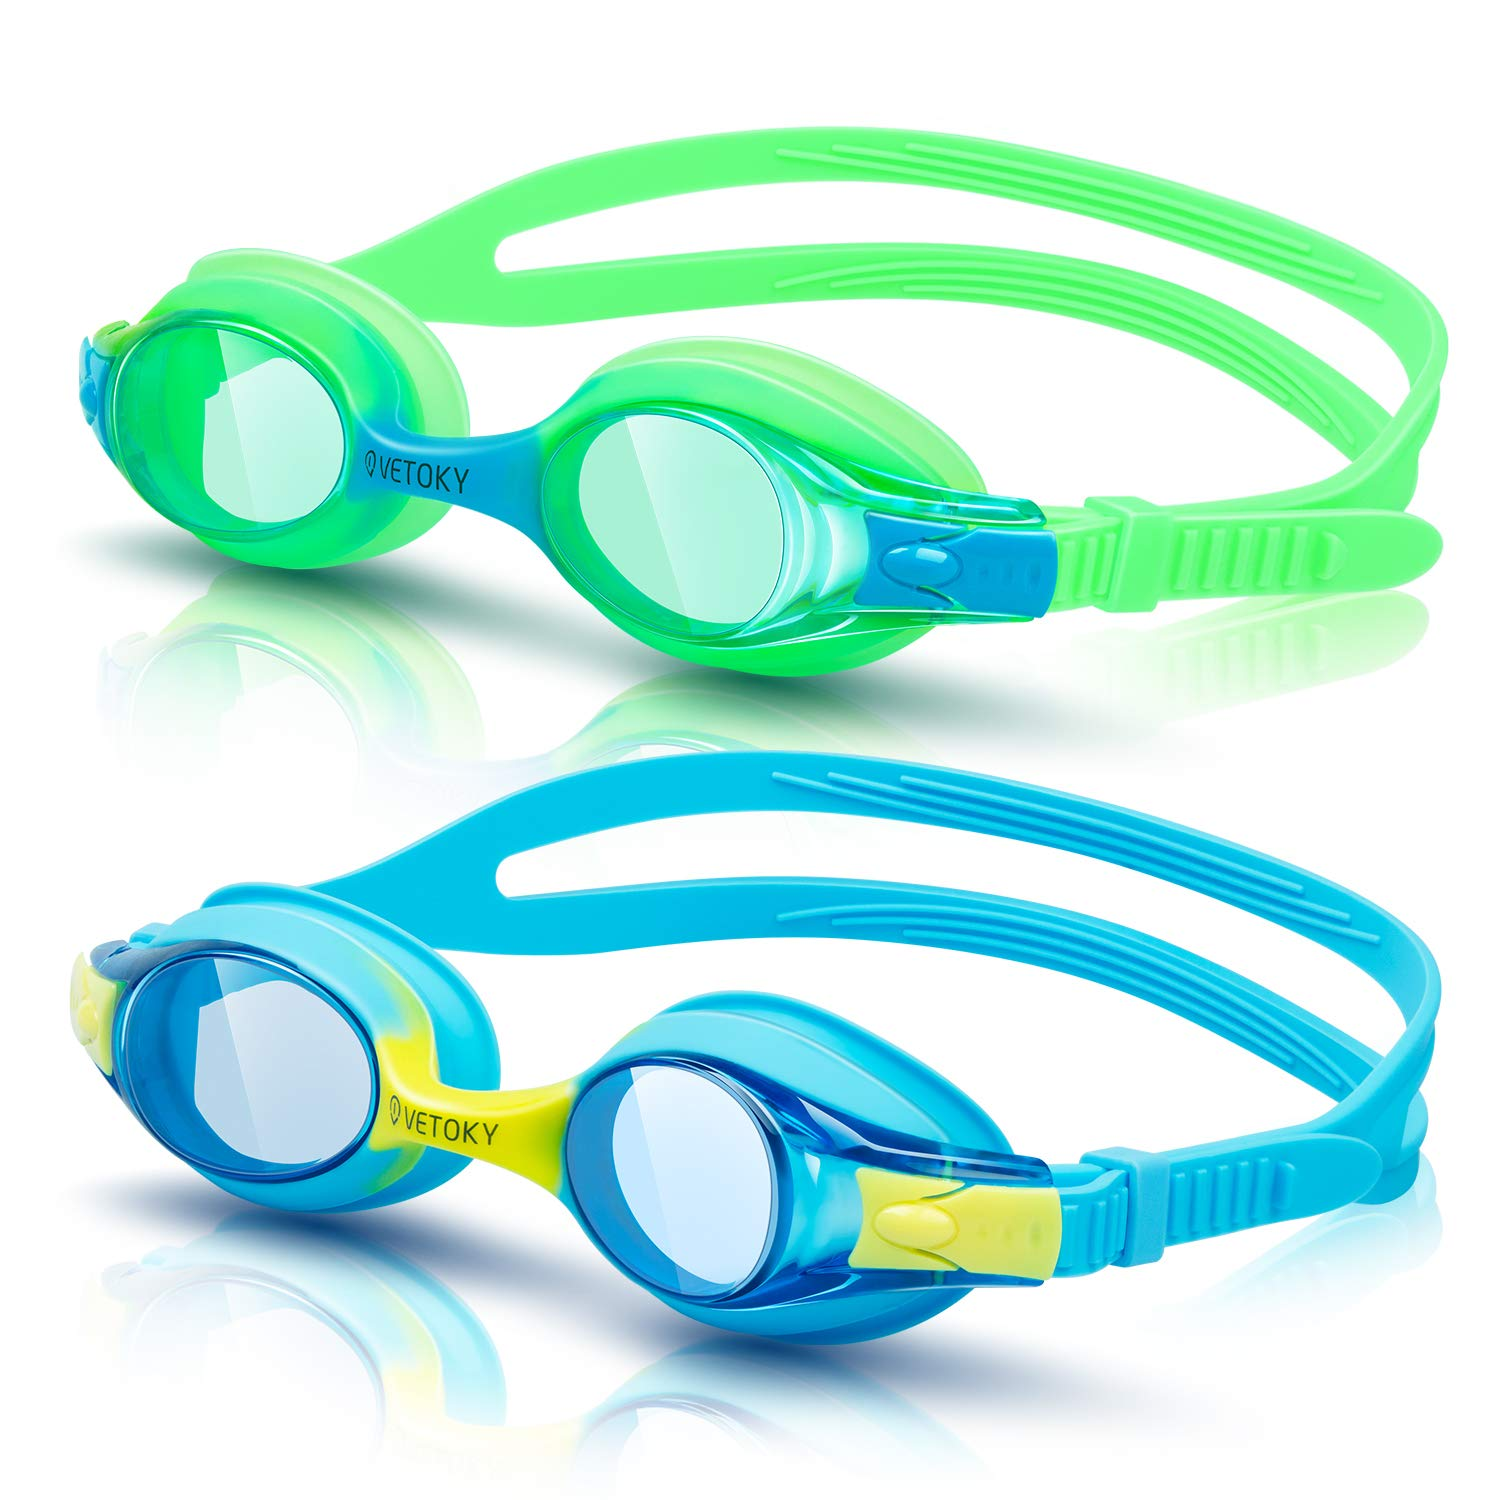 VETOKY Goggles Swimming Protection Leaking